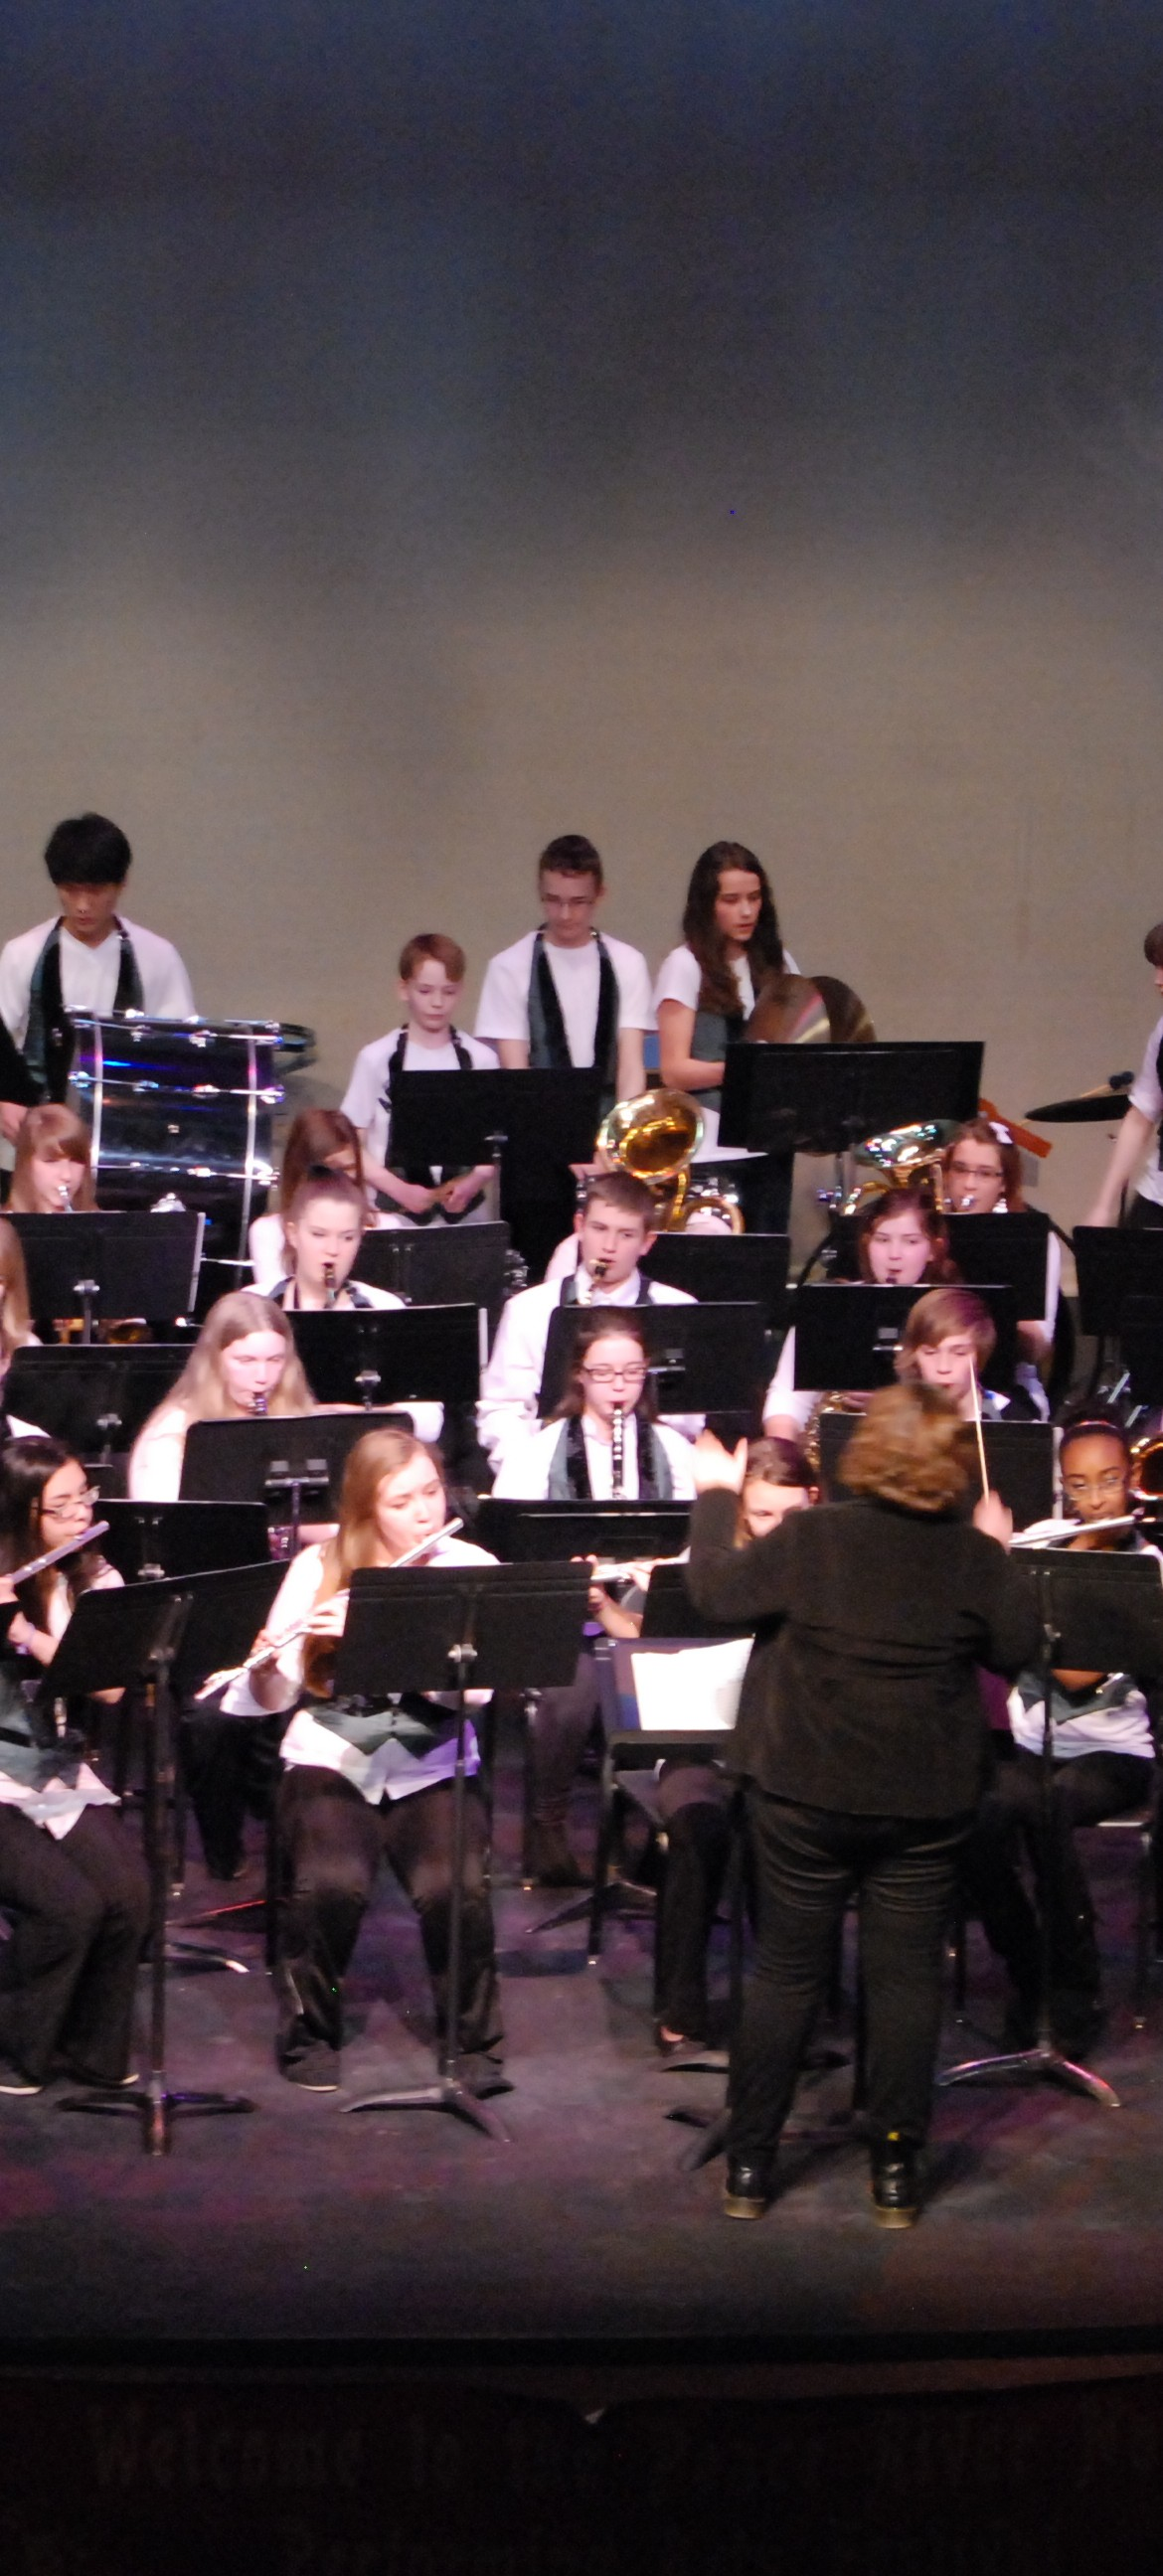 About School District 60 Band Program